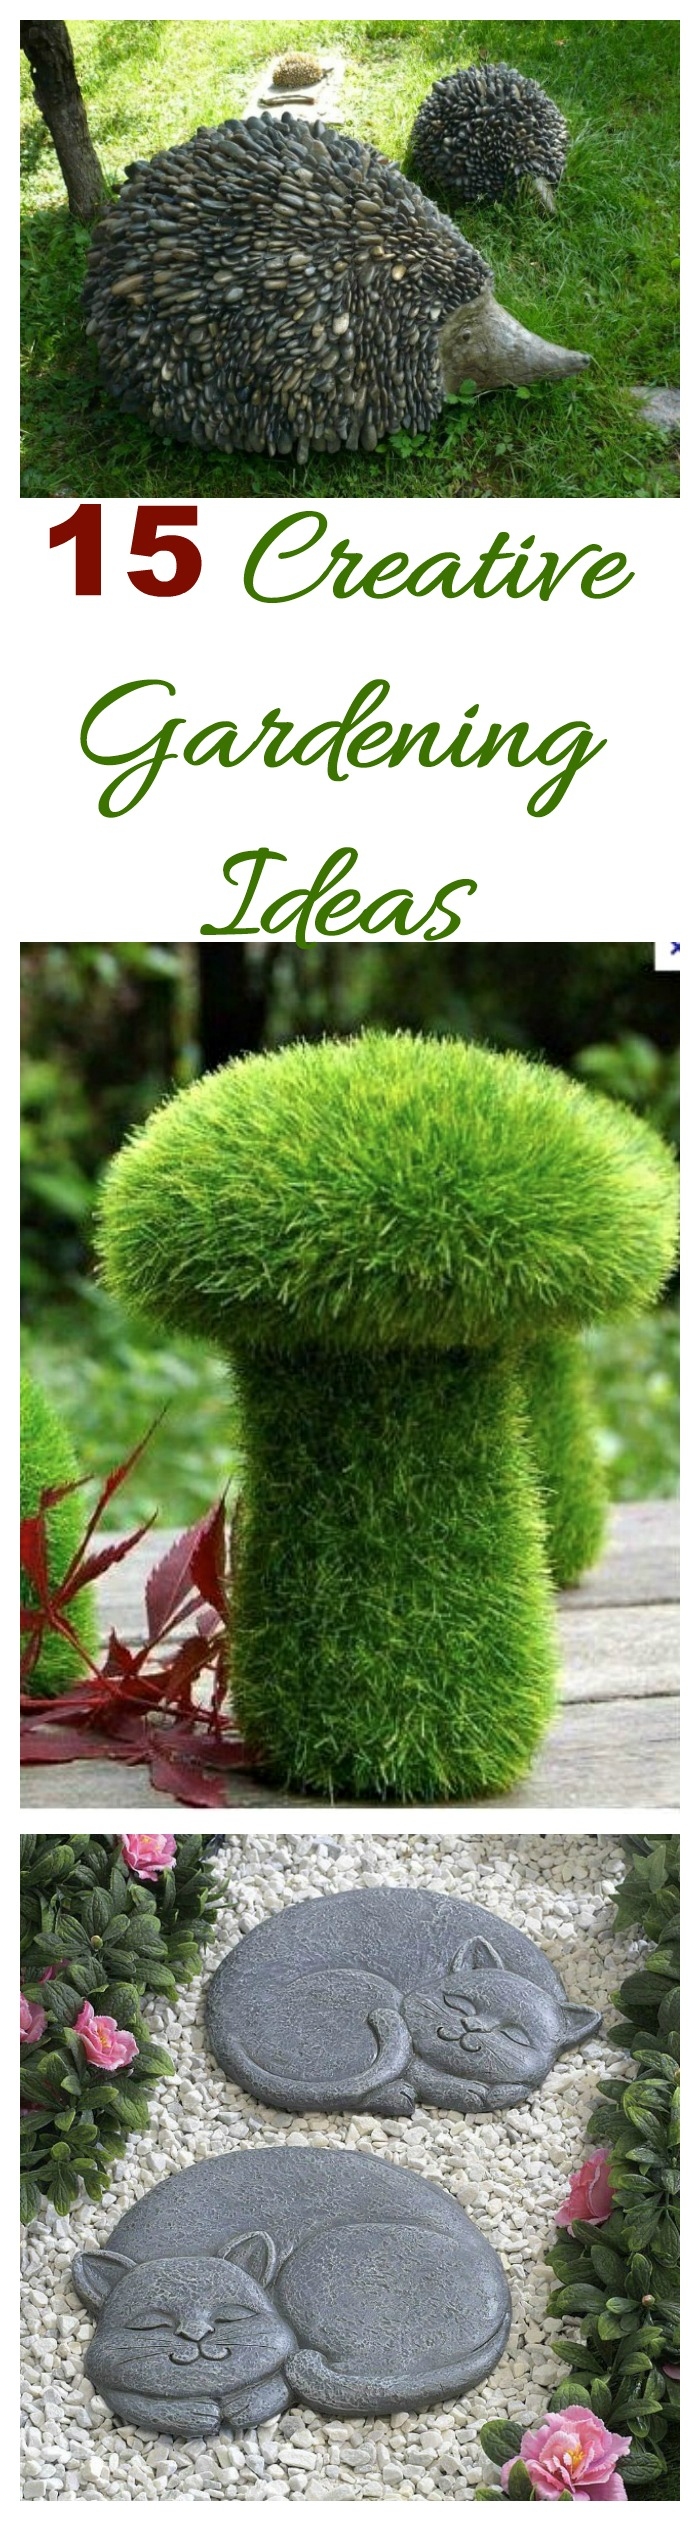 Creative Garden Ideas Gardening ideas creative projects and decor the gardening cook these 15 creative gardening ideas are a treasure trove of inspiration for your garden workwithnaturefo